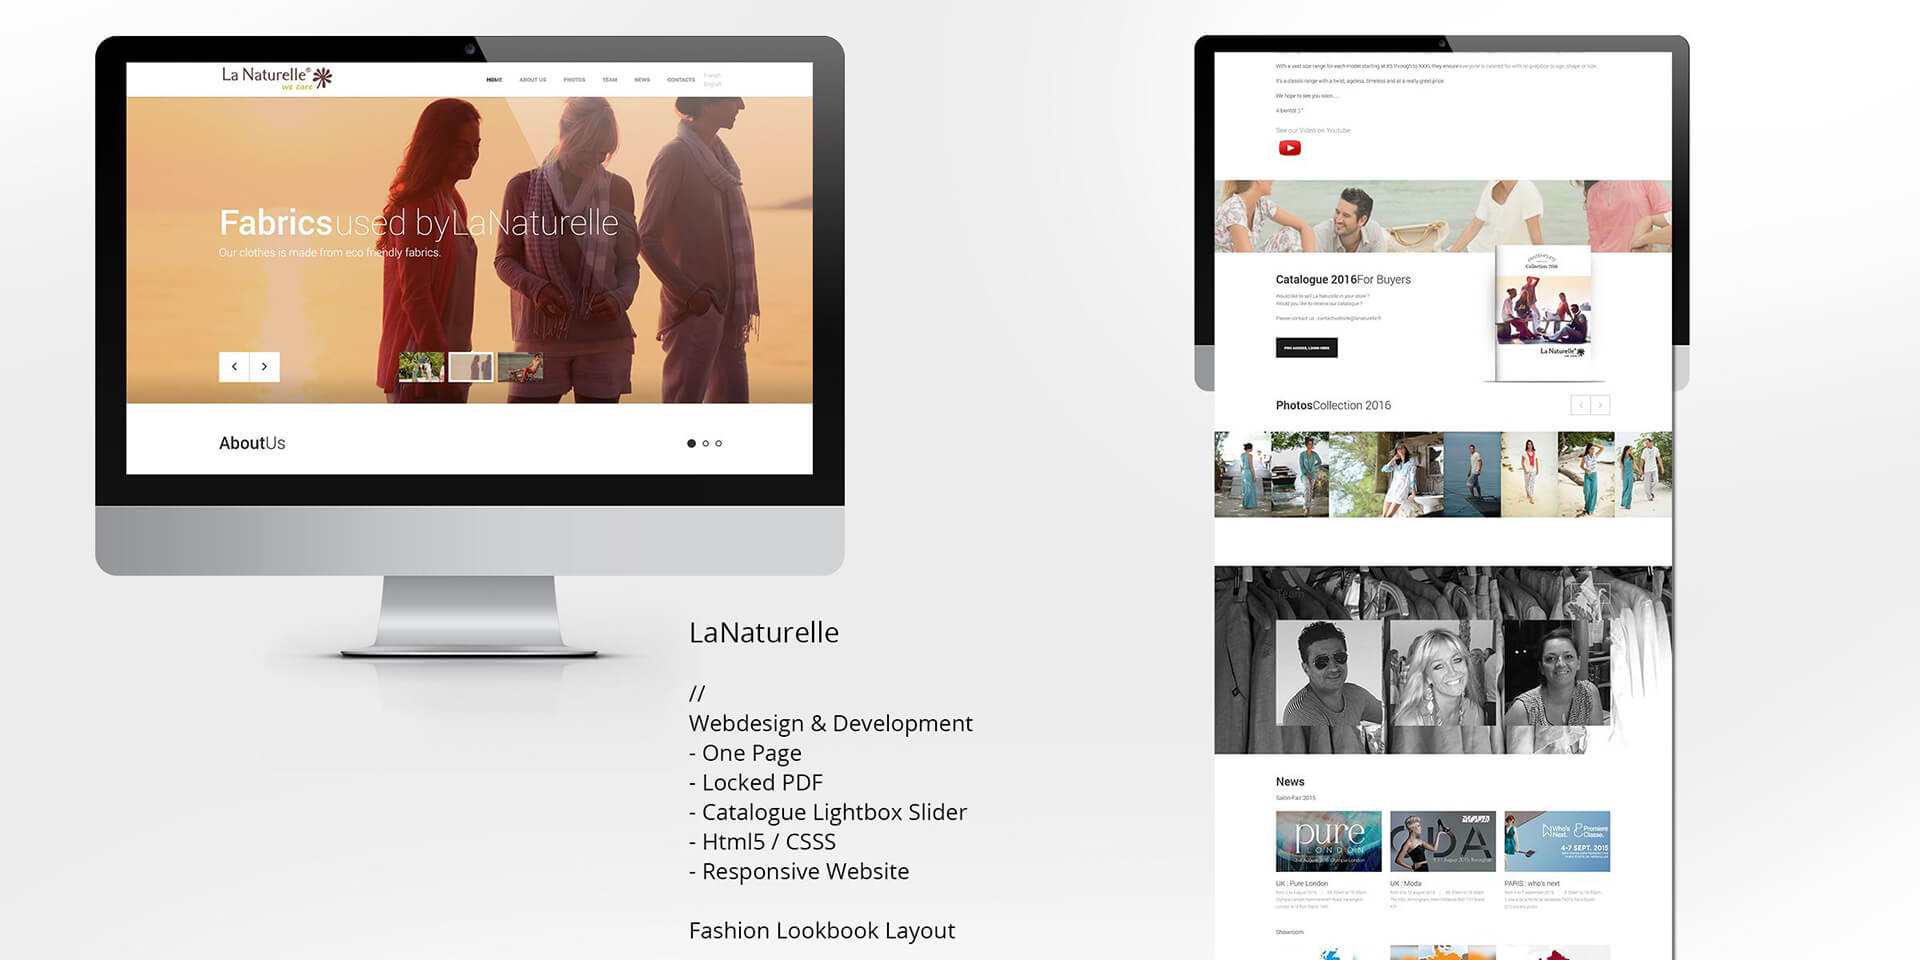 webdesign lanaturell website onepage fashion french sainttropez